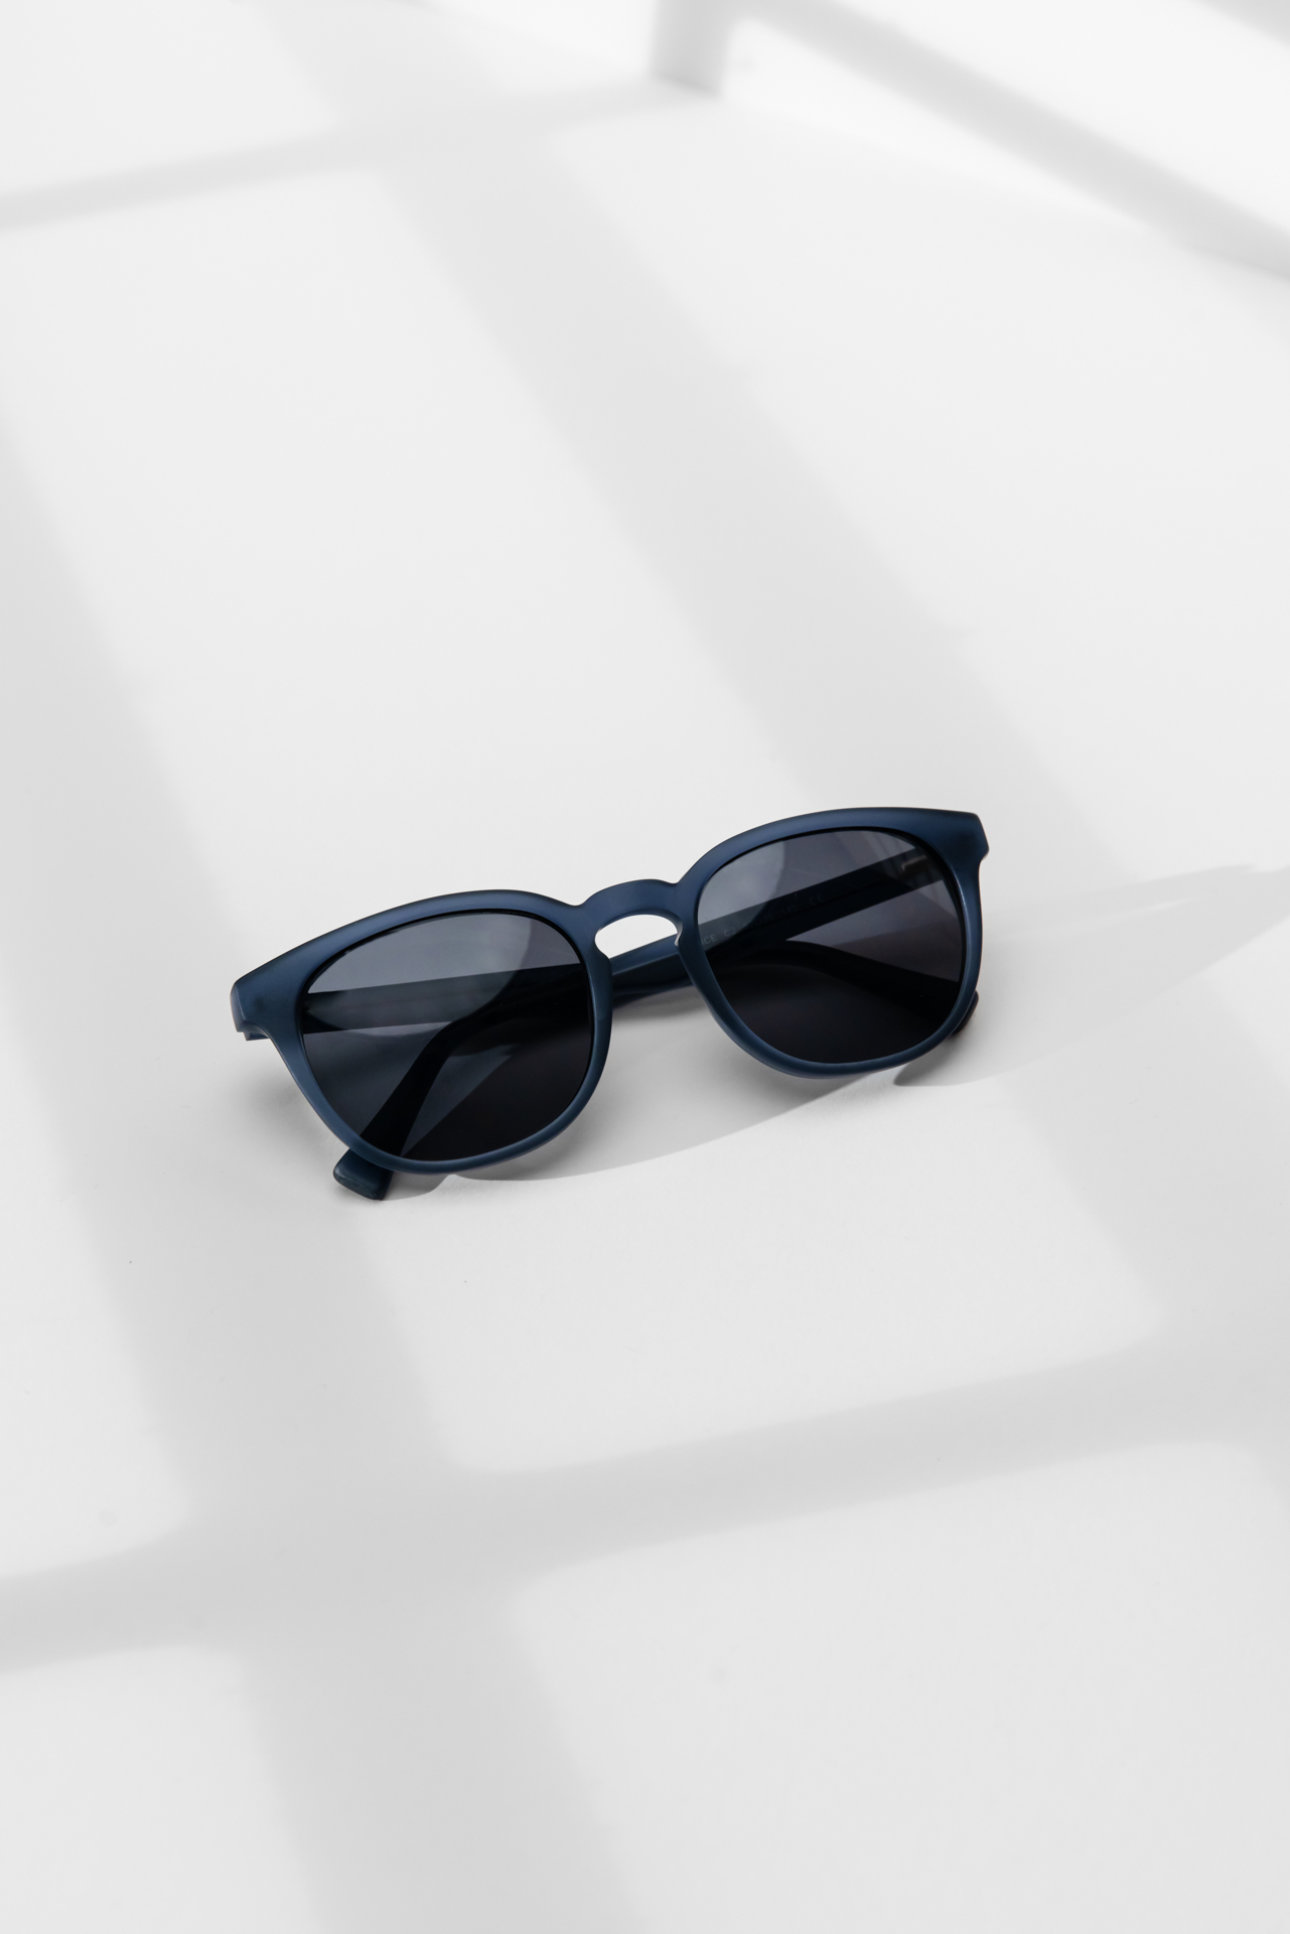 Duncan Todd Sunnies Product 2020 6